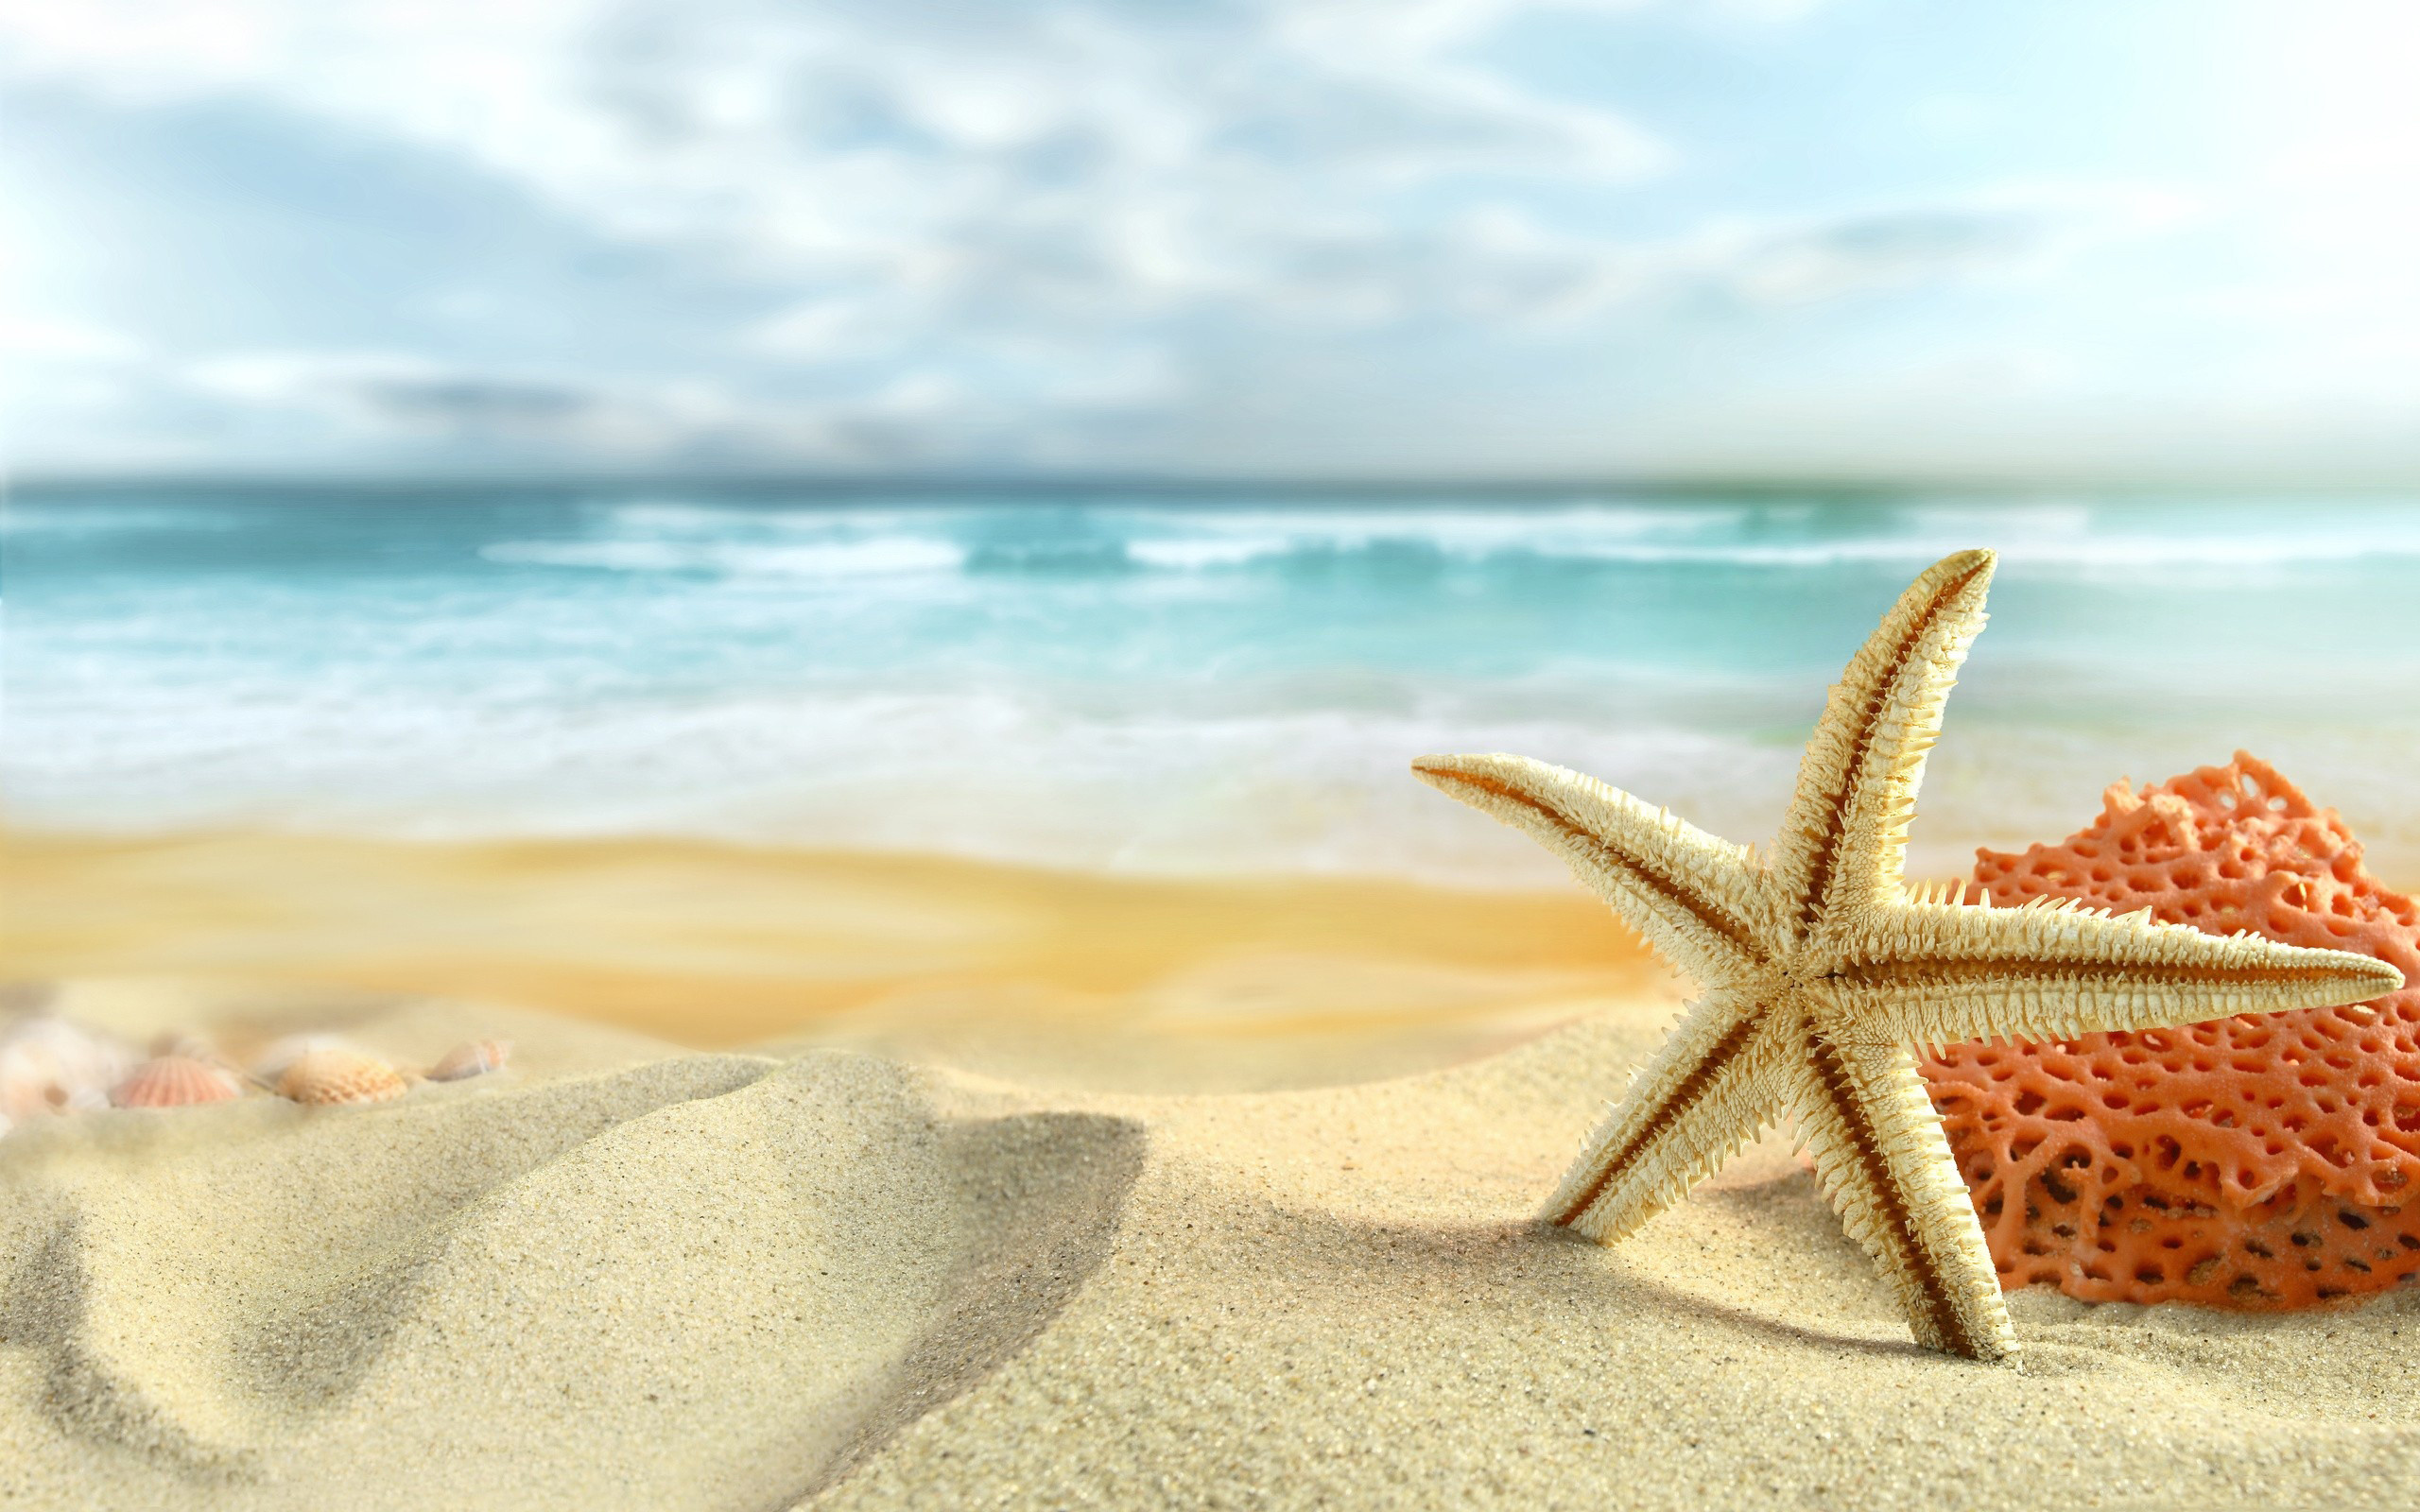 2560x1600 Beach Starfish Desktop Wallpaper 2219 #1029